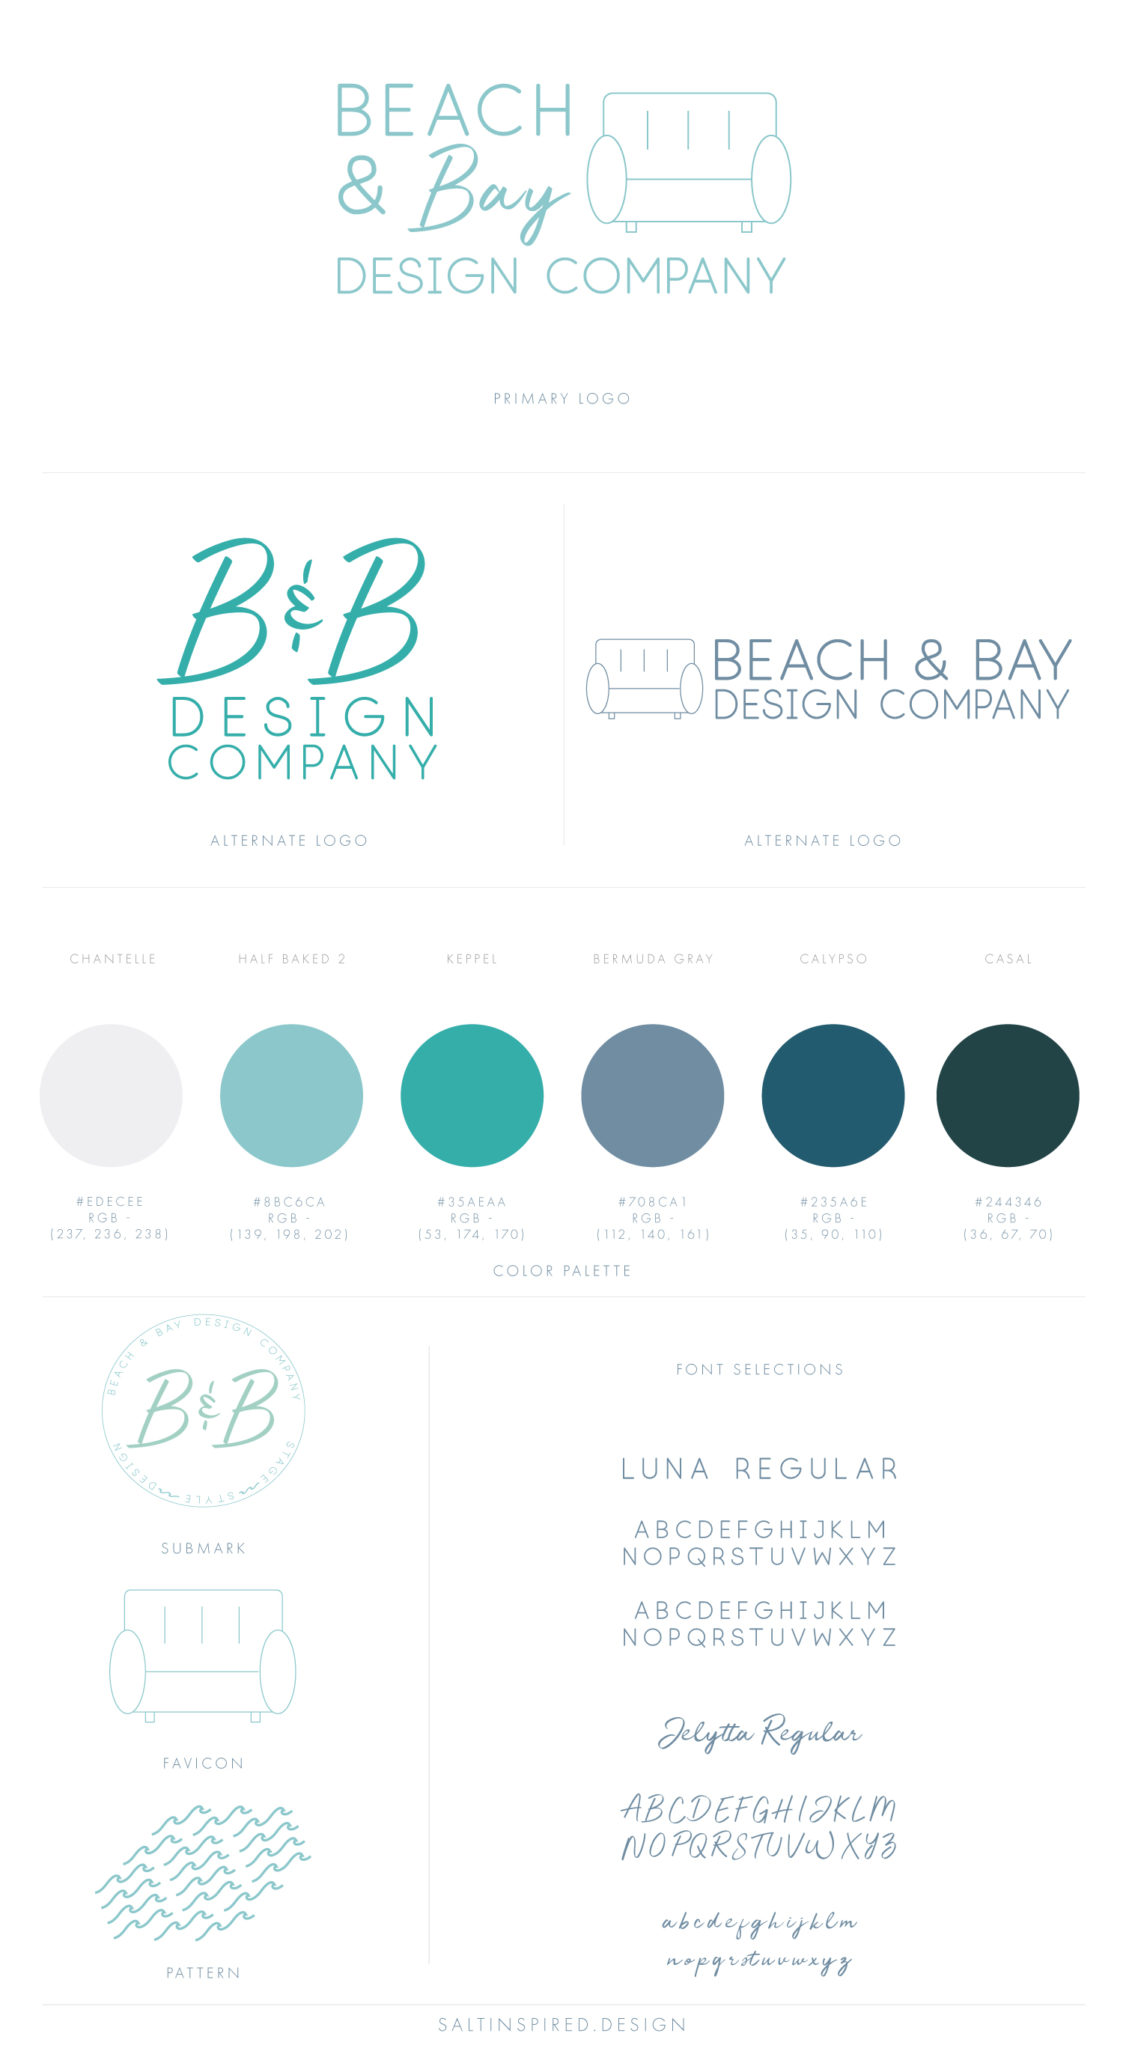 Salt Inspired Design | WordPress Web & Logo Design Studio for creative, ethical, and ocean-inspired businesses | Florida | Texas